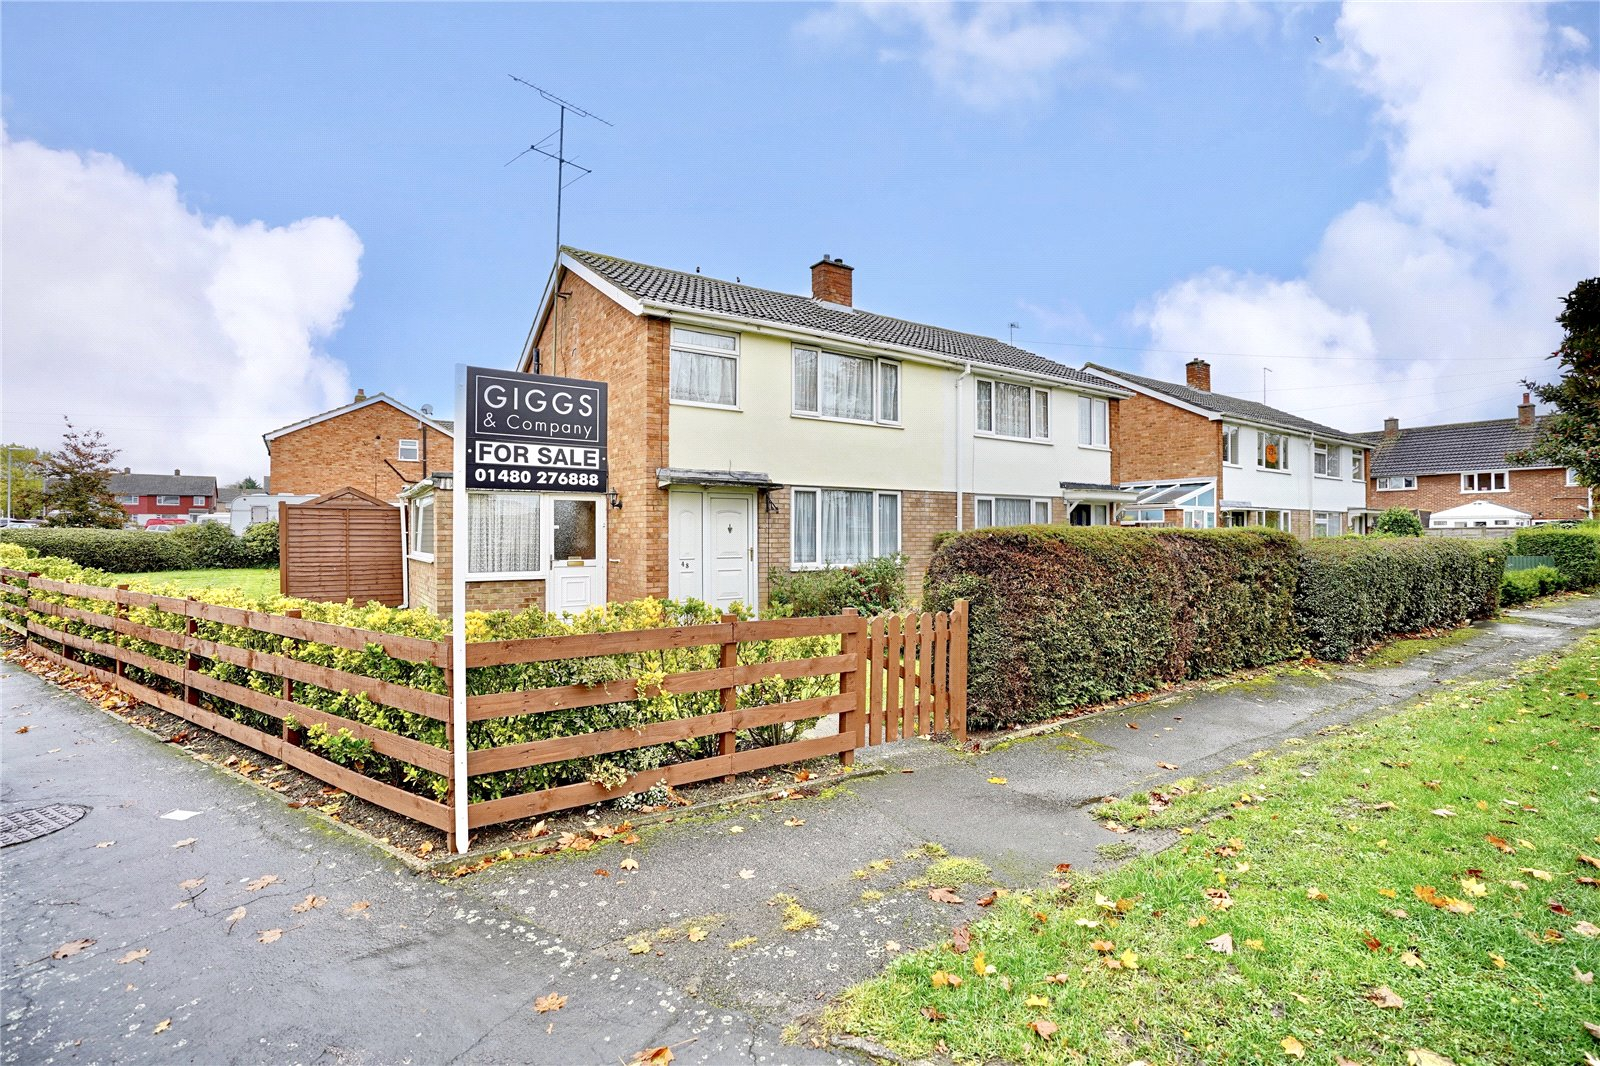 3 bed house for sale in Princes Drive, St. Neots  - Property Image 1